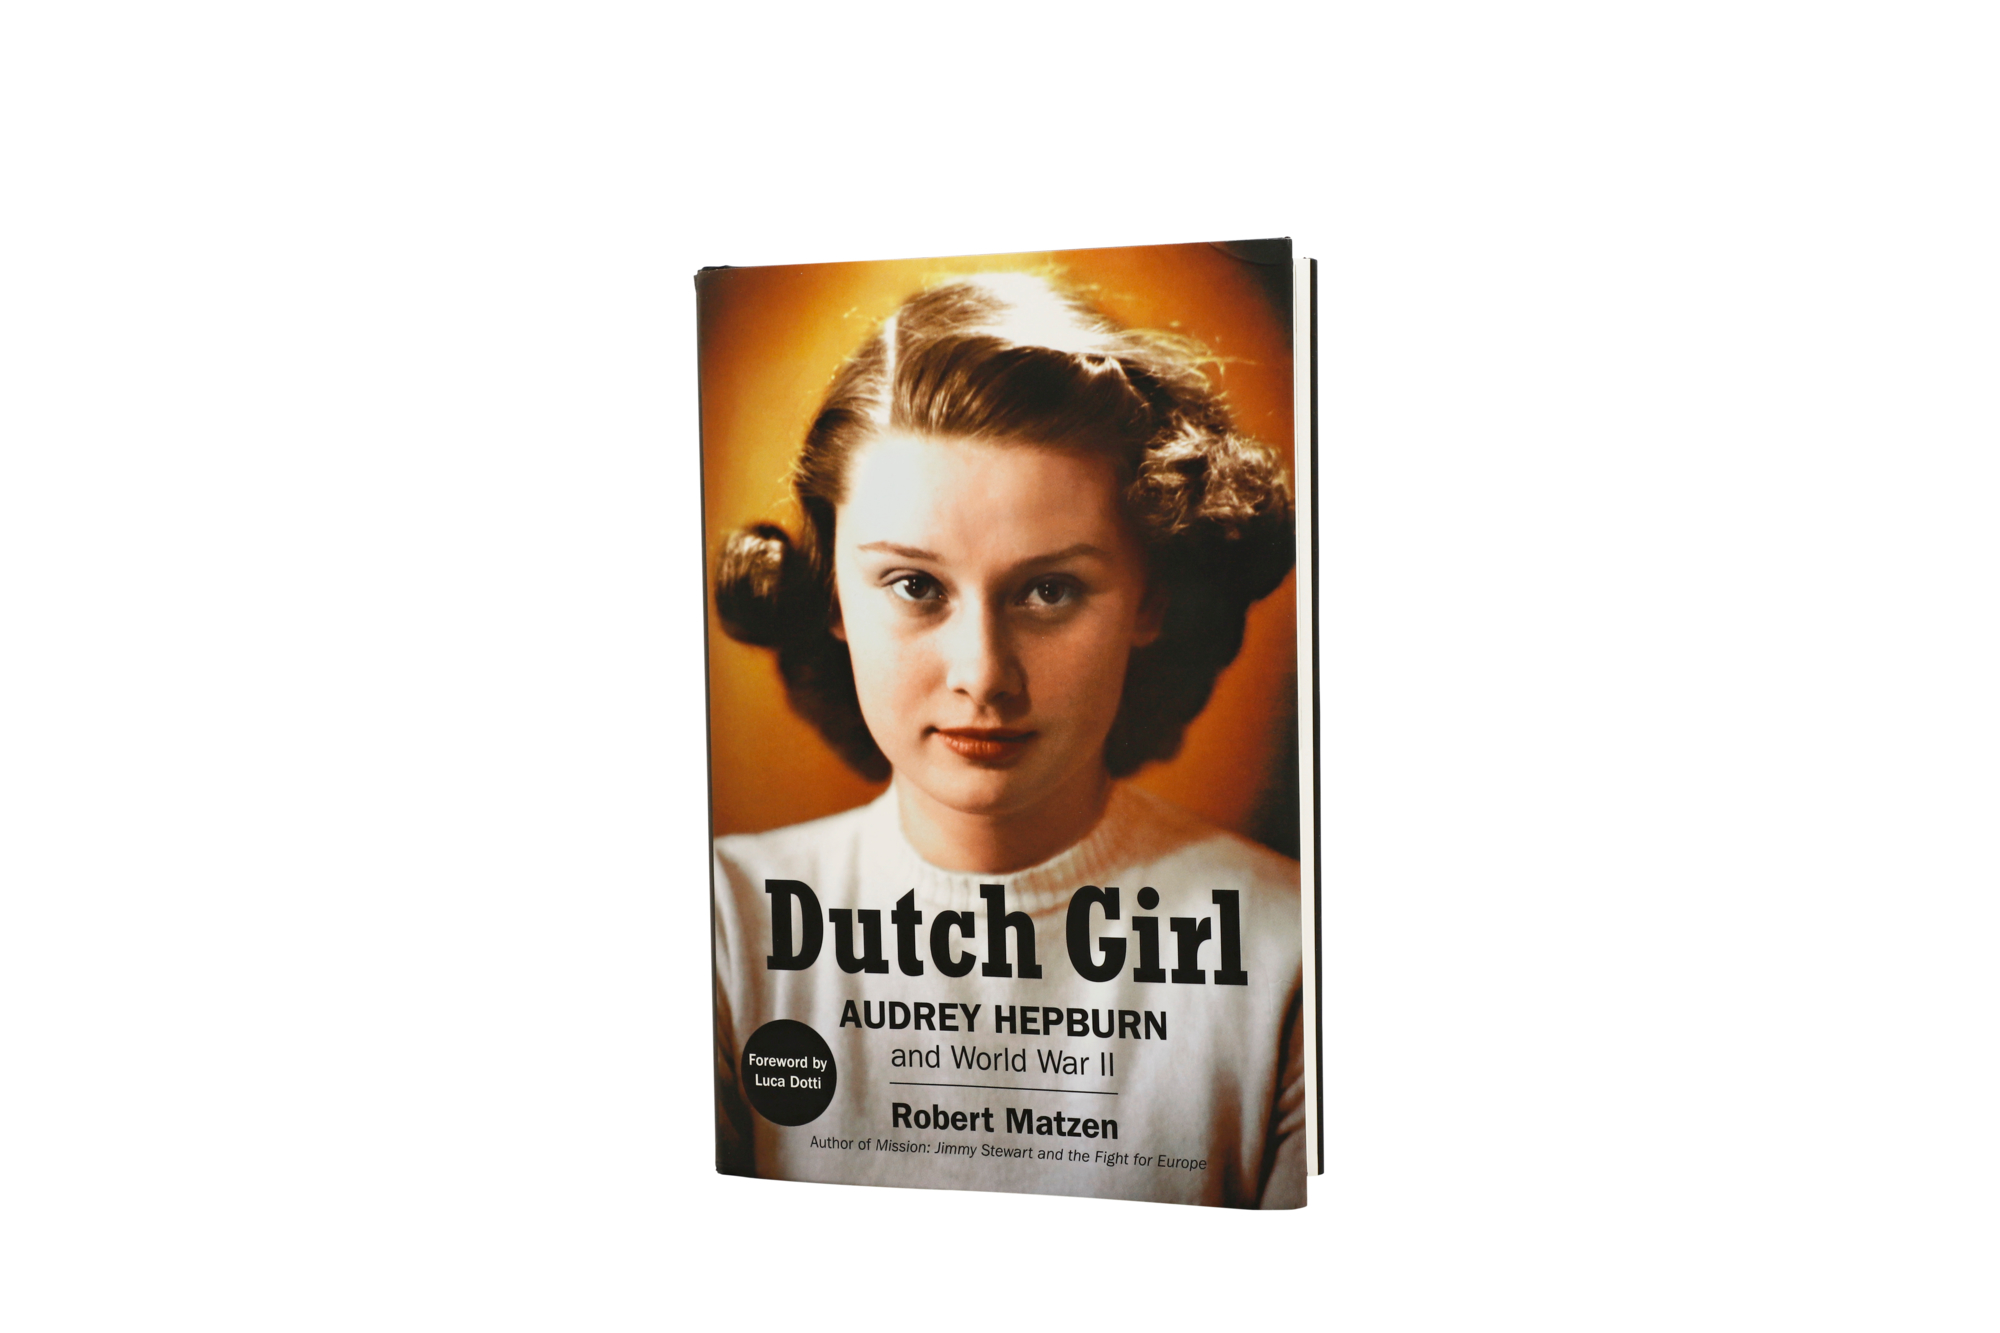 Dutch Girl by Robert Matzen